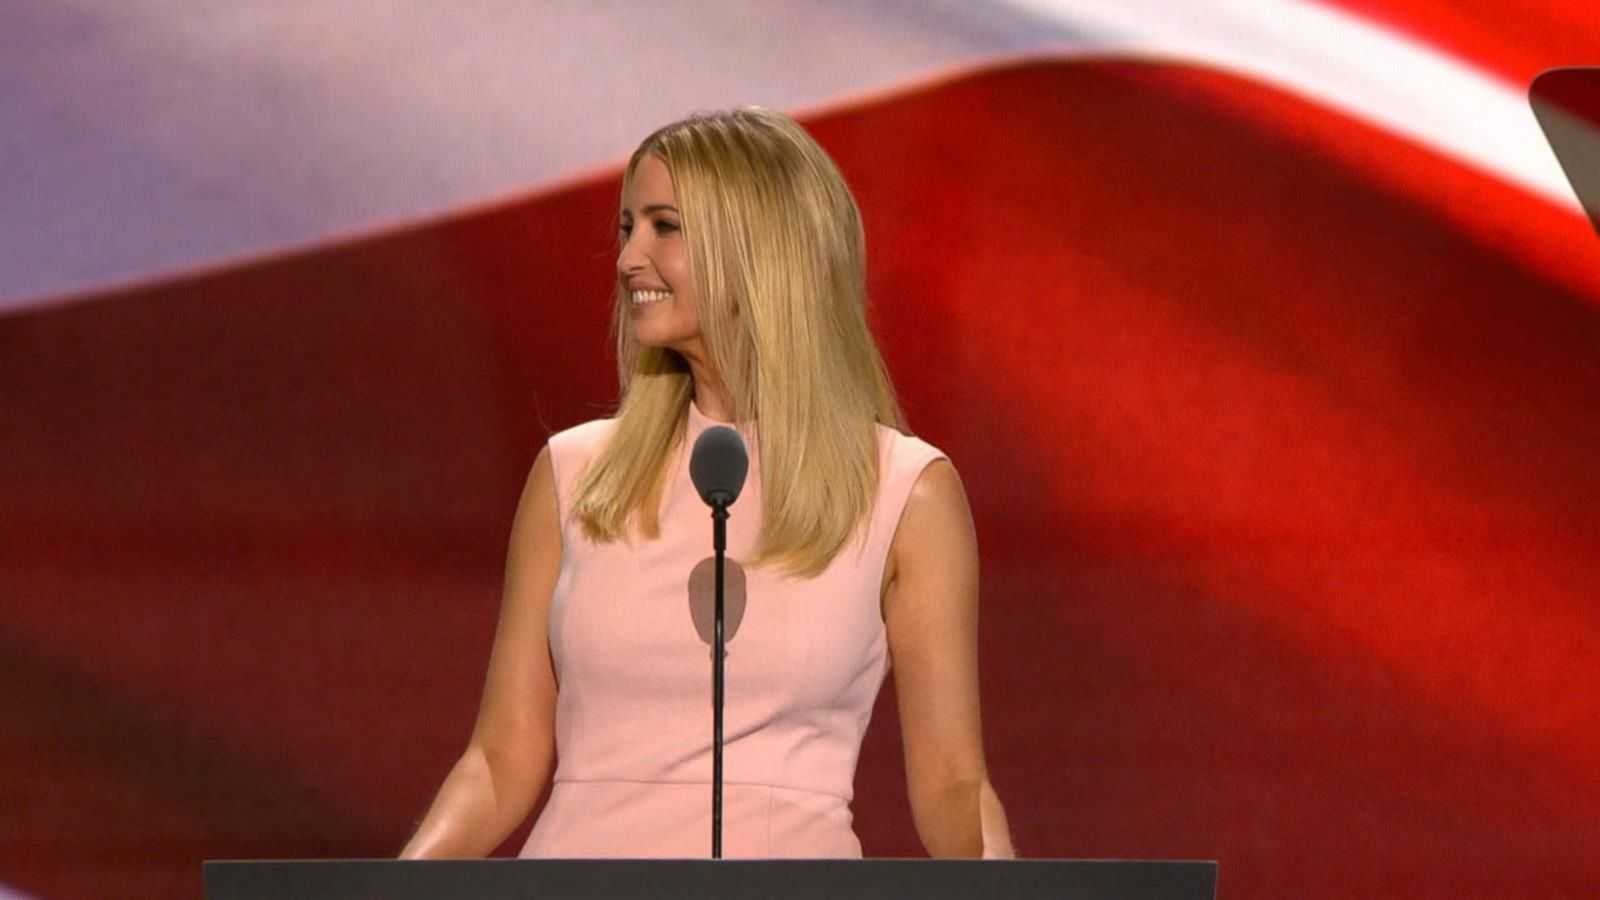 VIDEO: Ivanka Trump Could Be Most Powerful First Daughter in US History